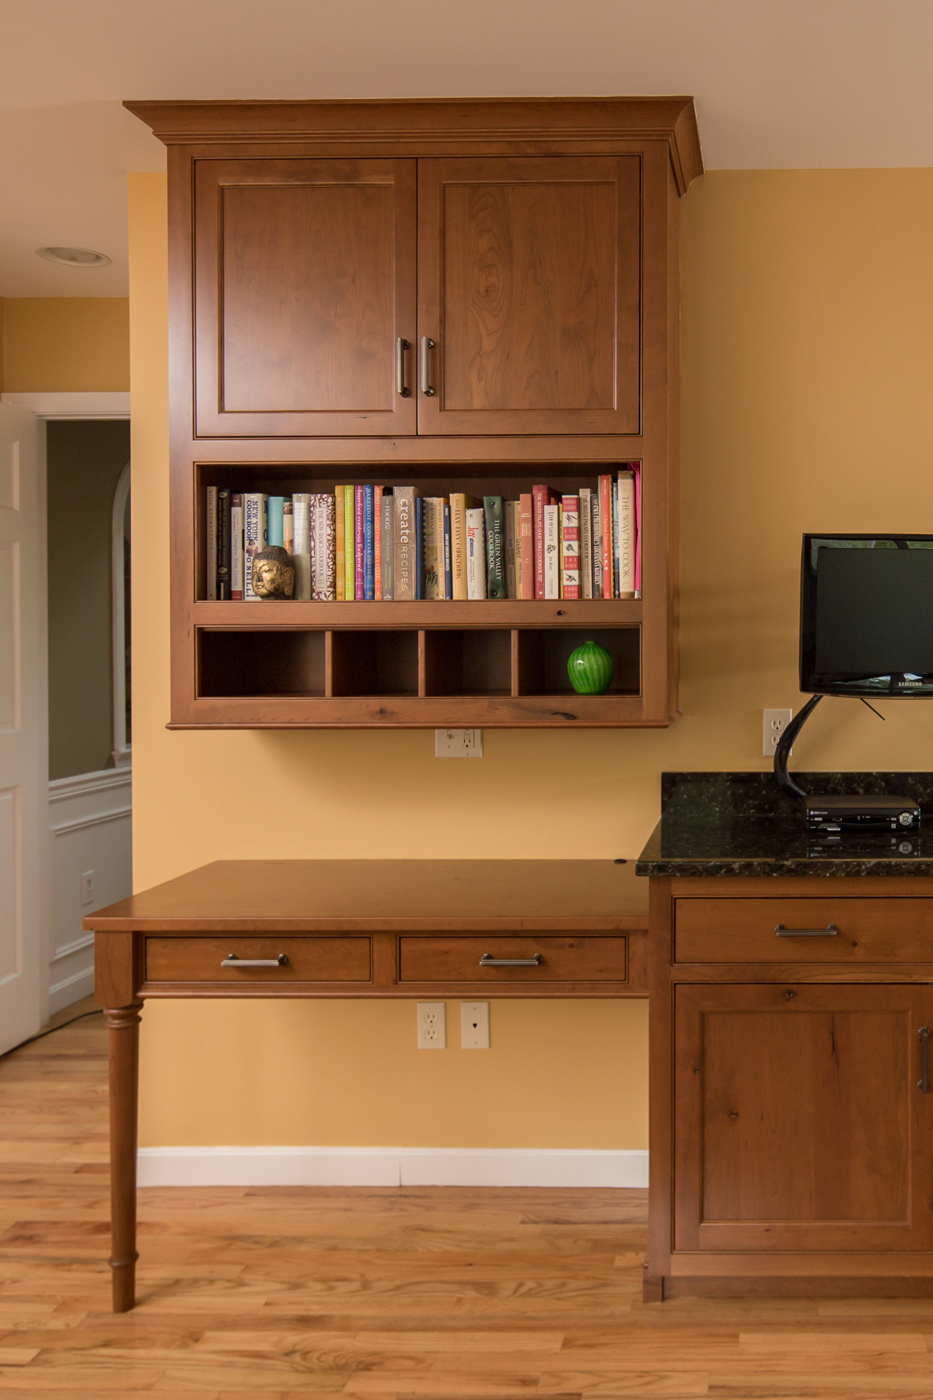 Cherry Kitchen Desk and Bookshelf